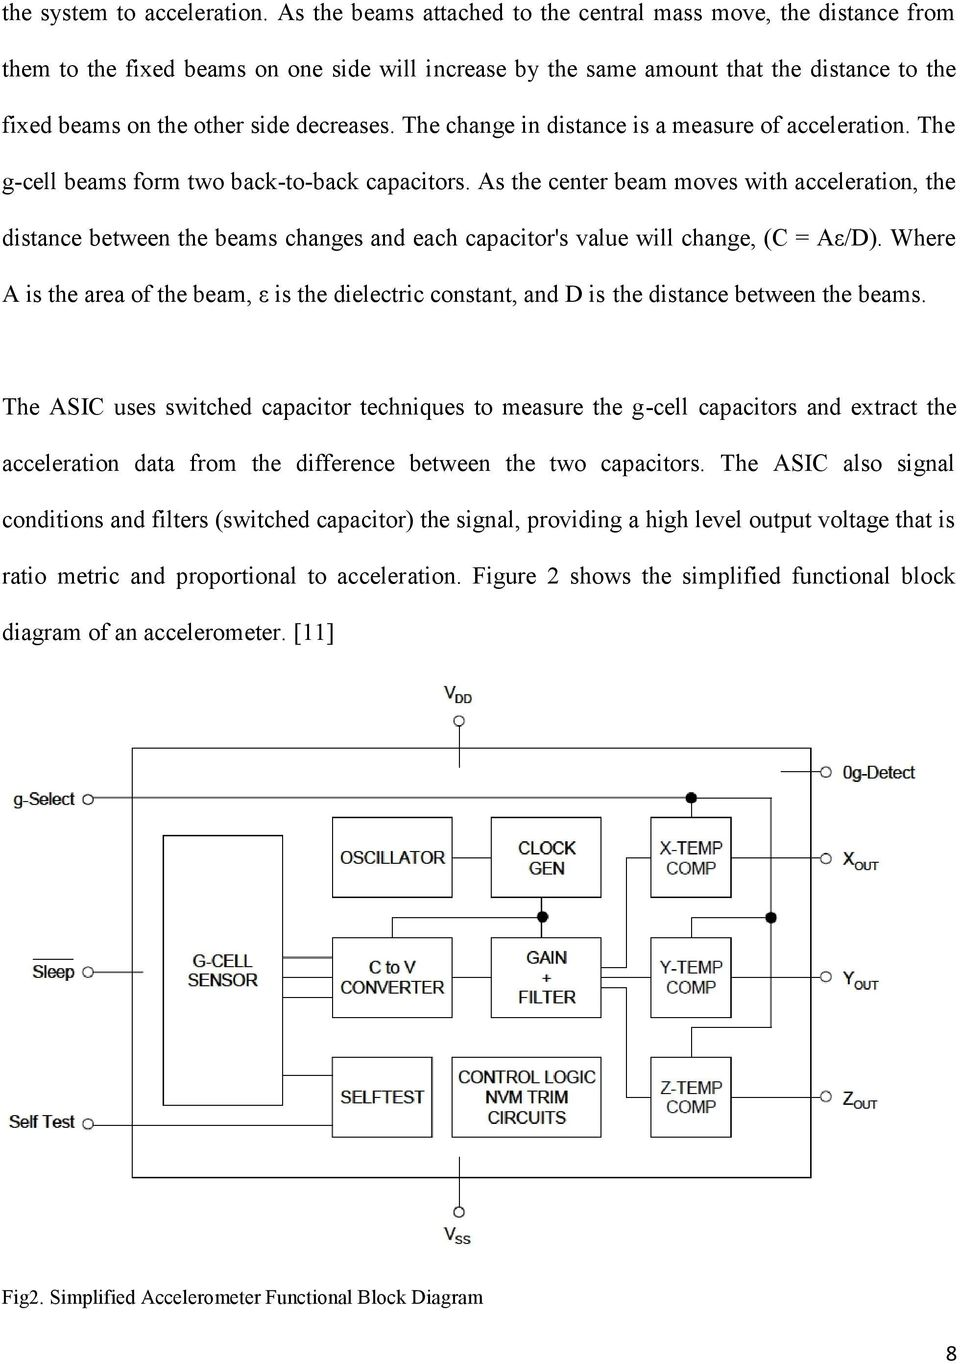 Robotic Arm Control Through Human Movement Using Accelerometers Ac Fan Speed Android Mobile Microtronics Technologies The Change In Distance Is A Measure Of Acceleration G Cell Beams Form